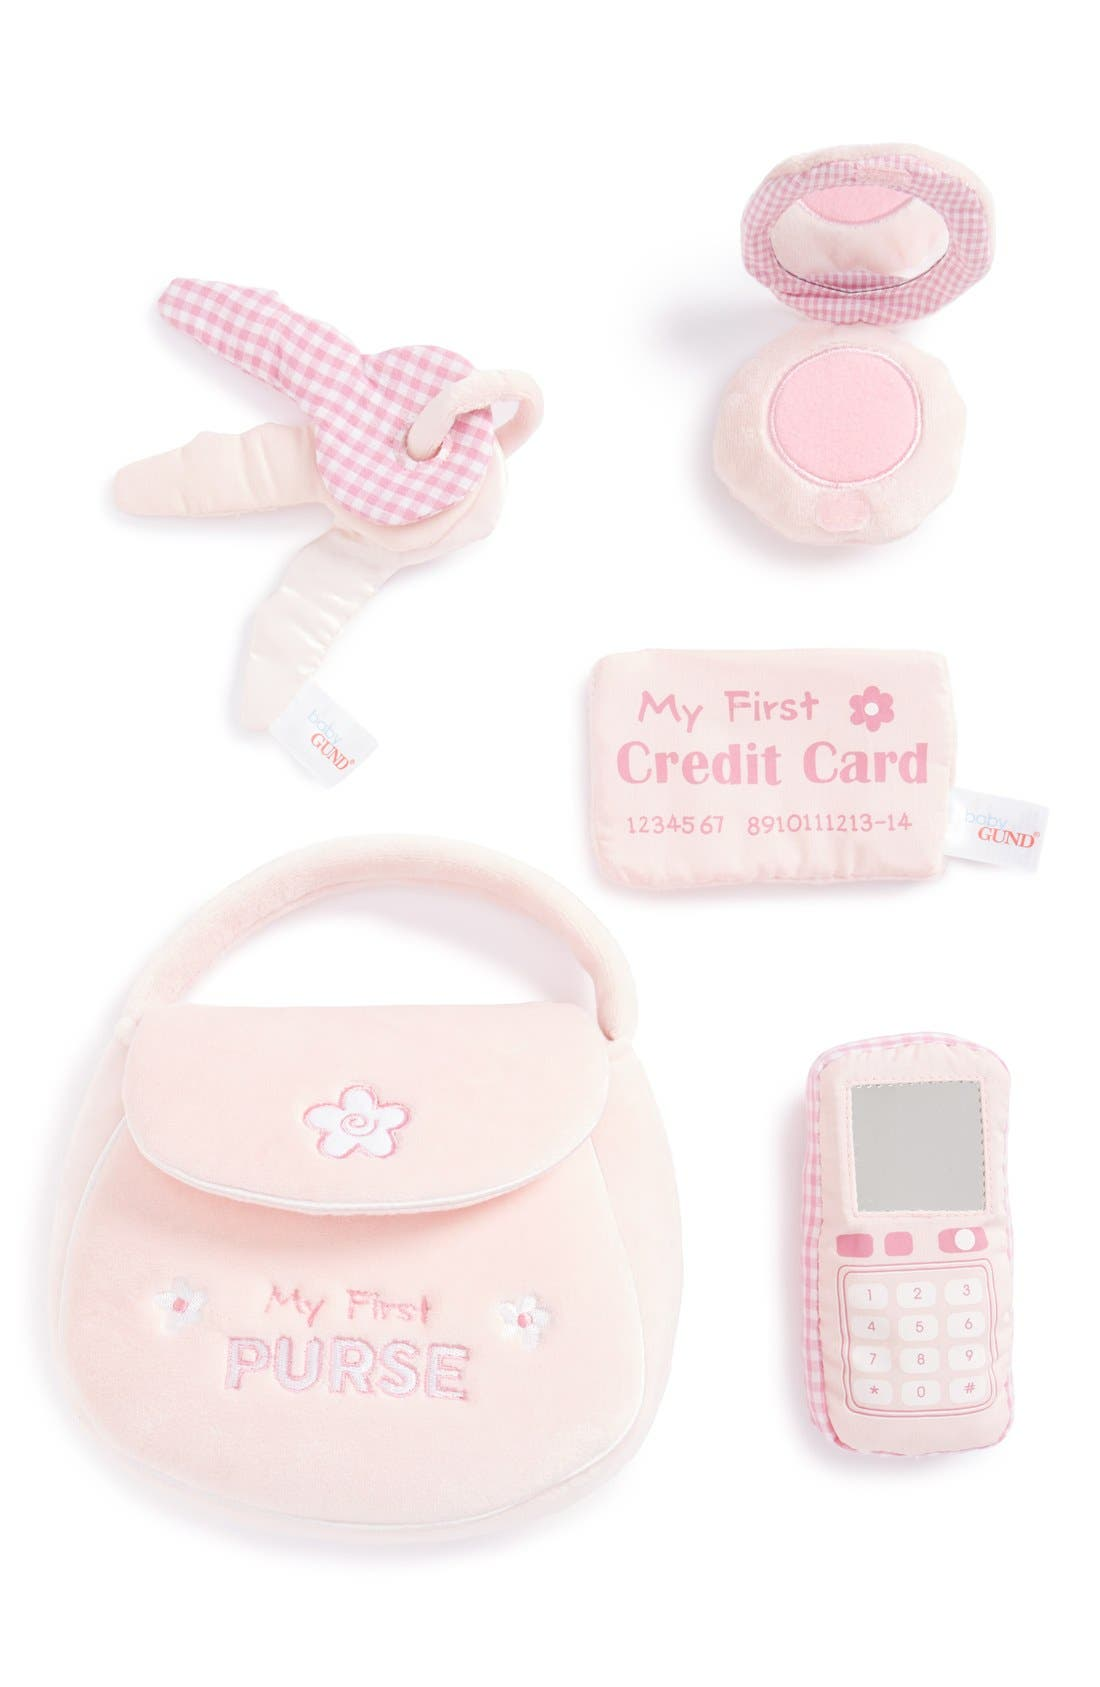 Baby Gund 'My First Purse' Play Set,                         Main,                         color, Pink